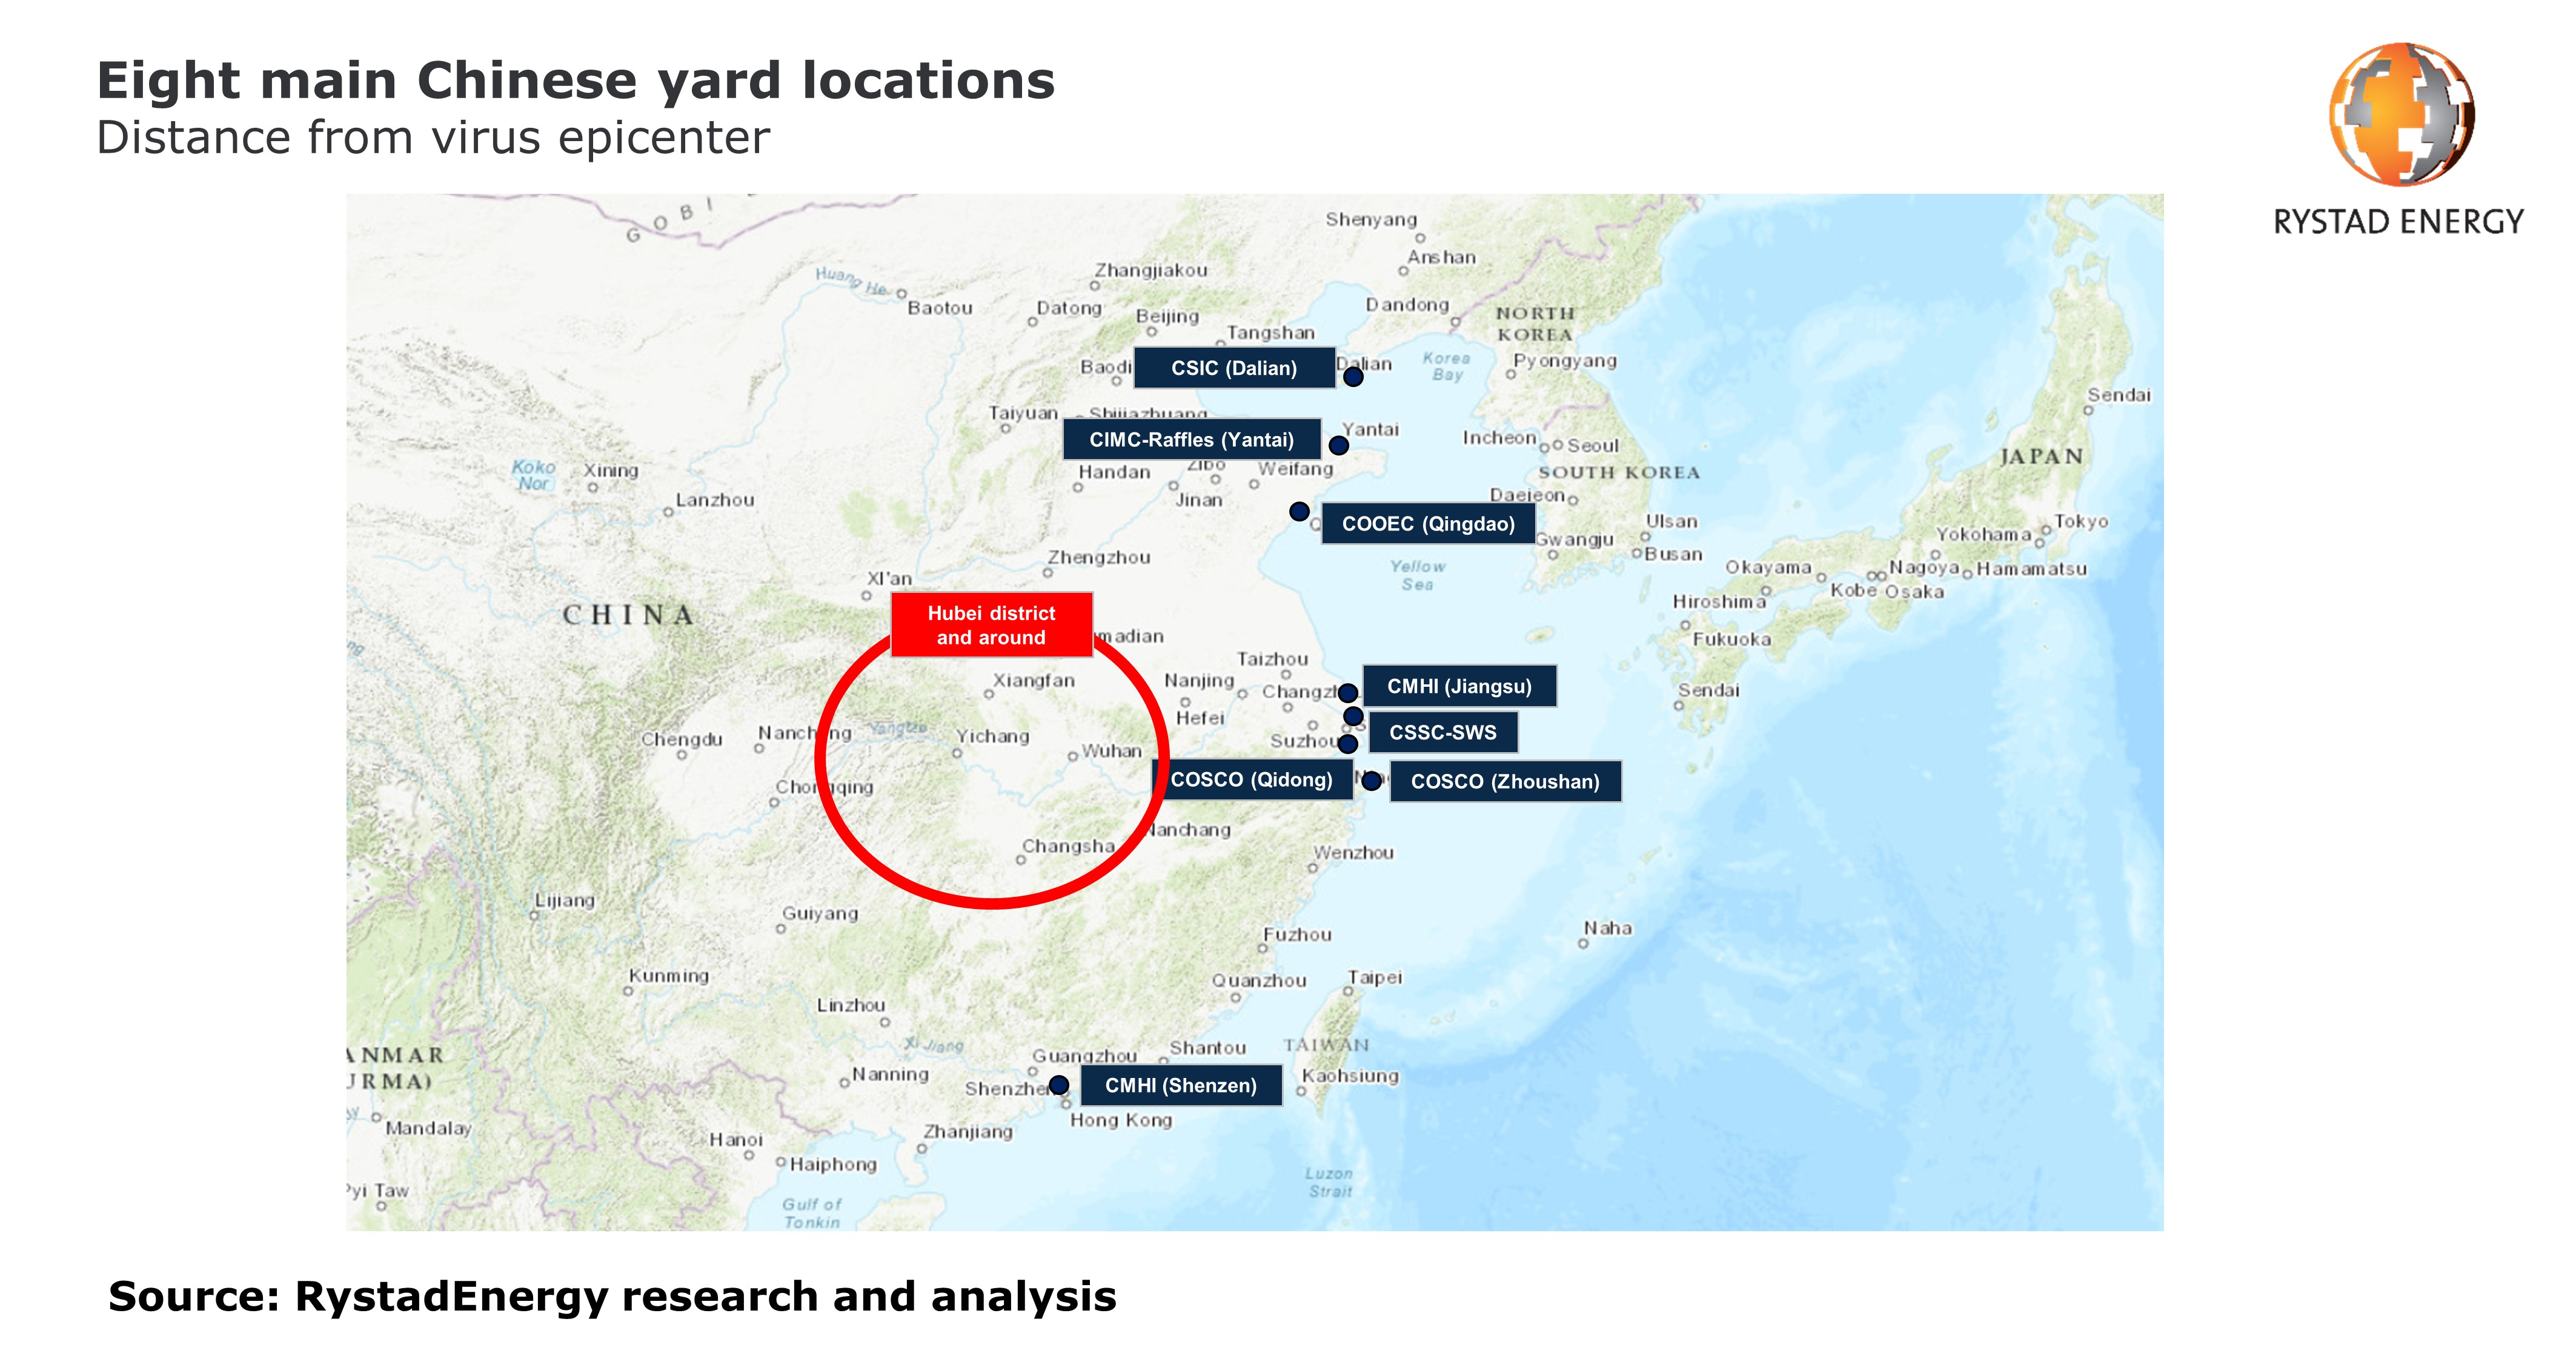 Map showing eight main Chinese yard locations in distance from virus epicenter